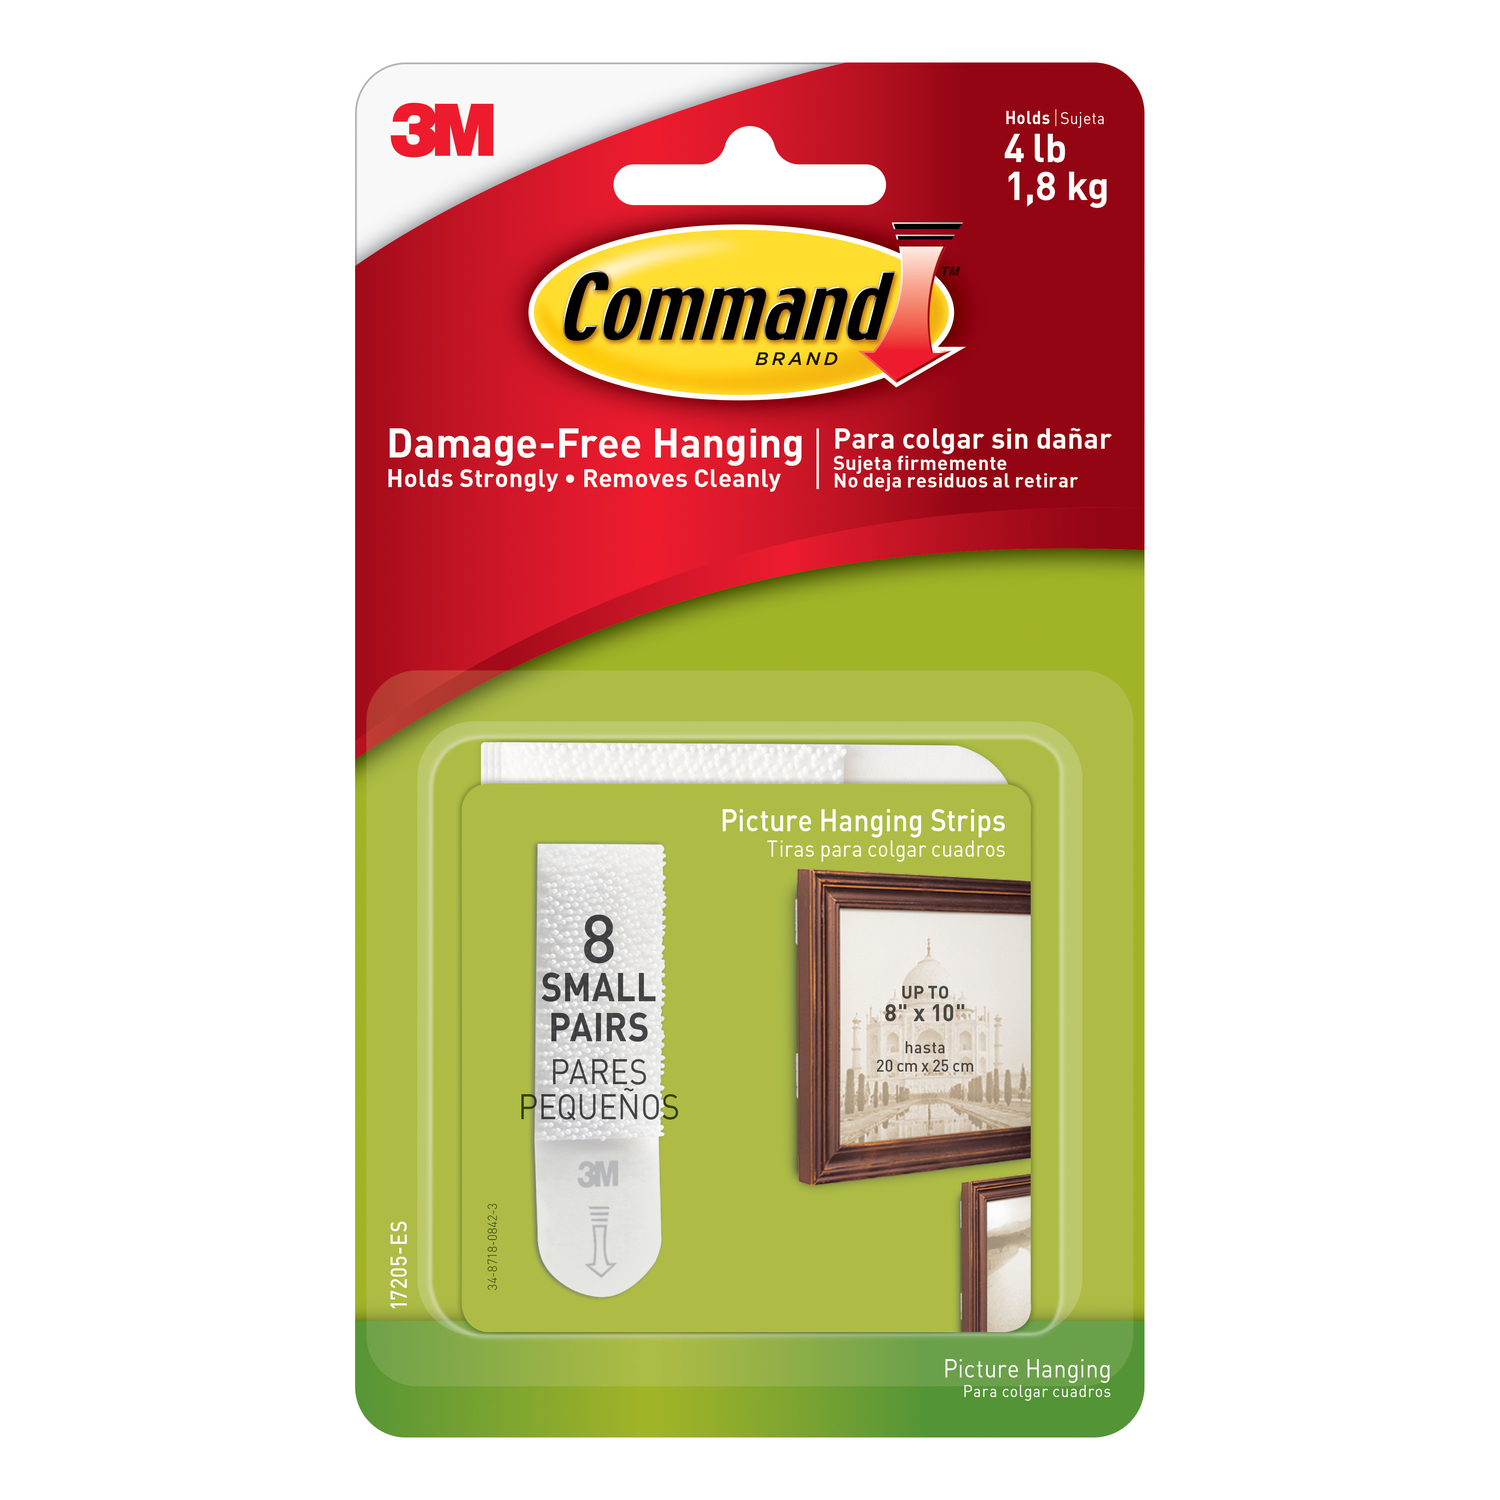 3M Command Foam Picture Hanging Strips 4 lb. 16 pk White - Ace Hardware